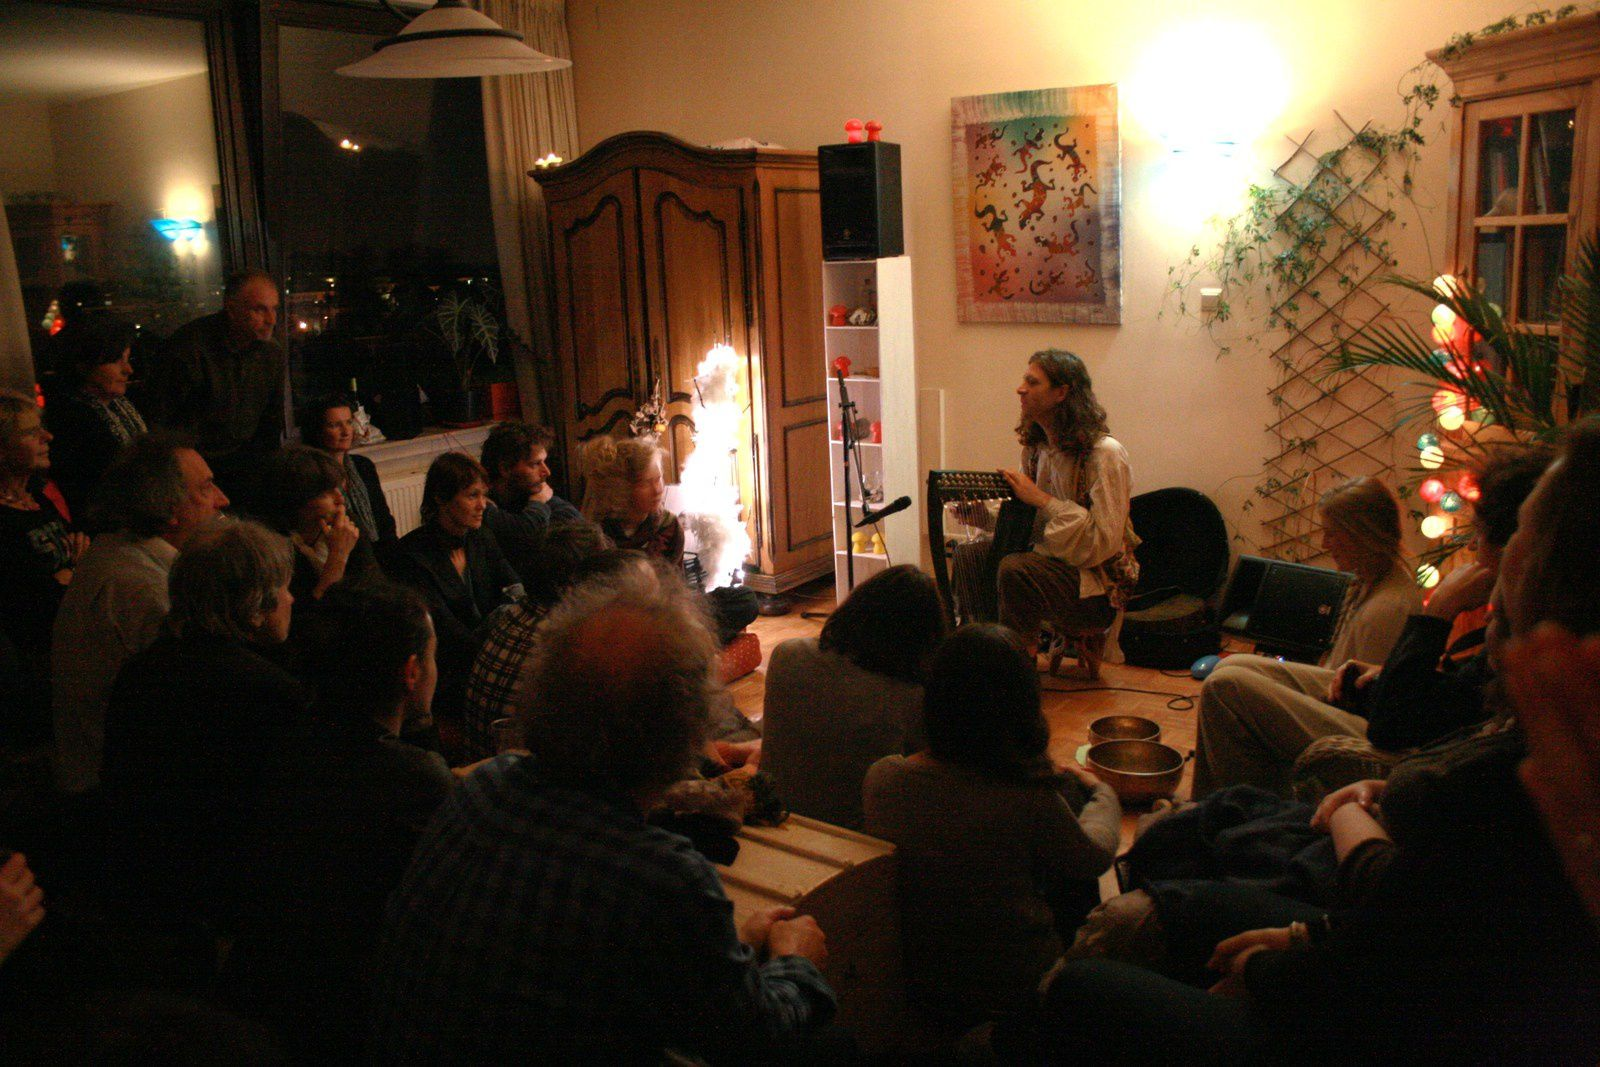 B'ee (US) (In Gowan Ring/Birch Book) @ Home concert (Uccle) - 08/11/2014